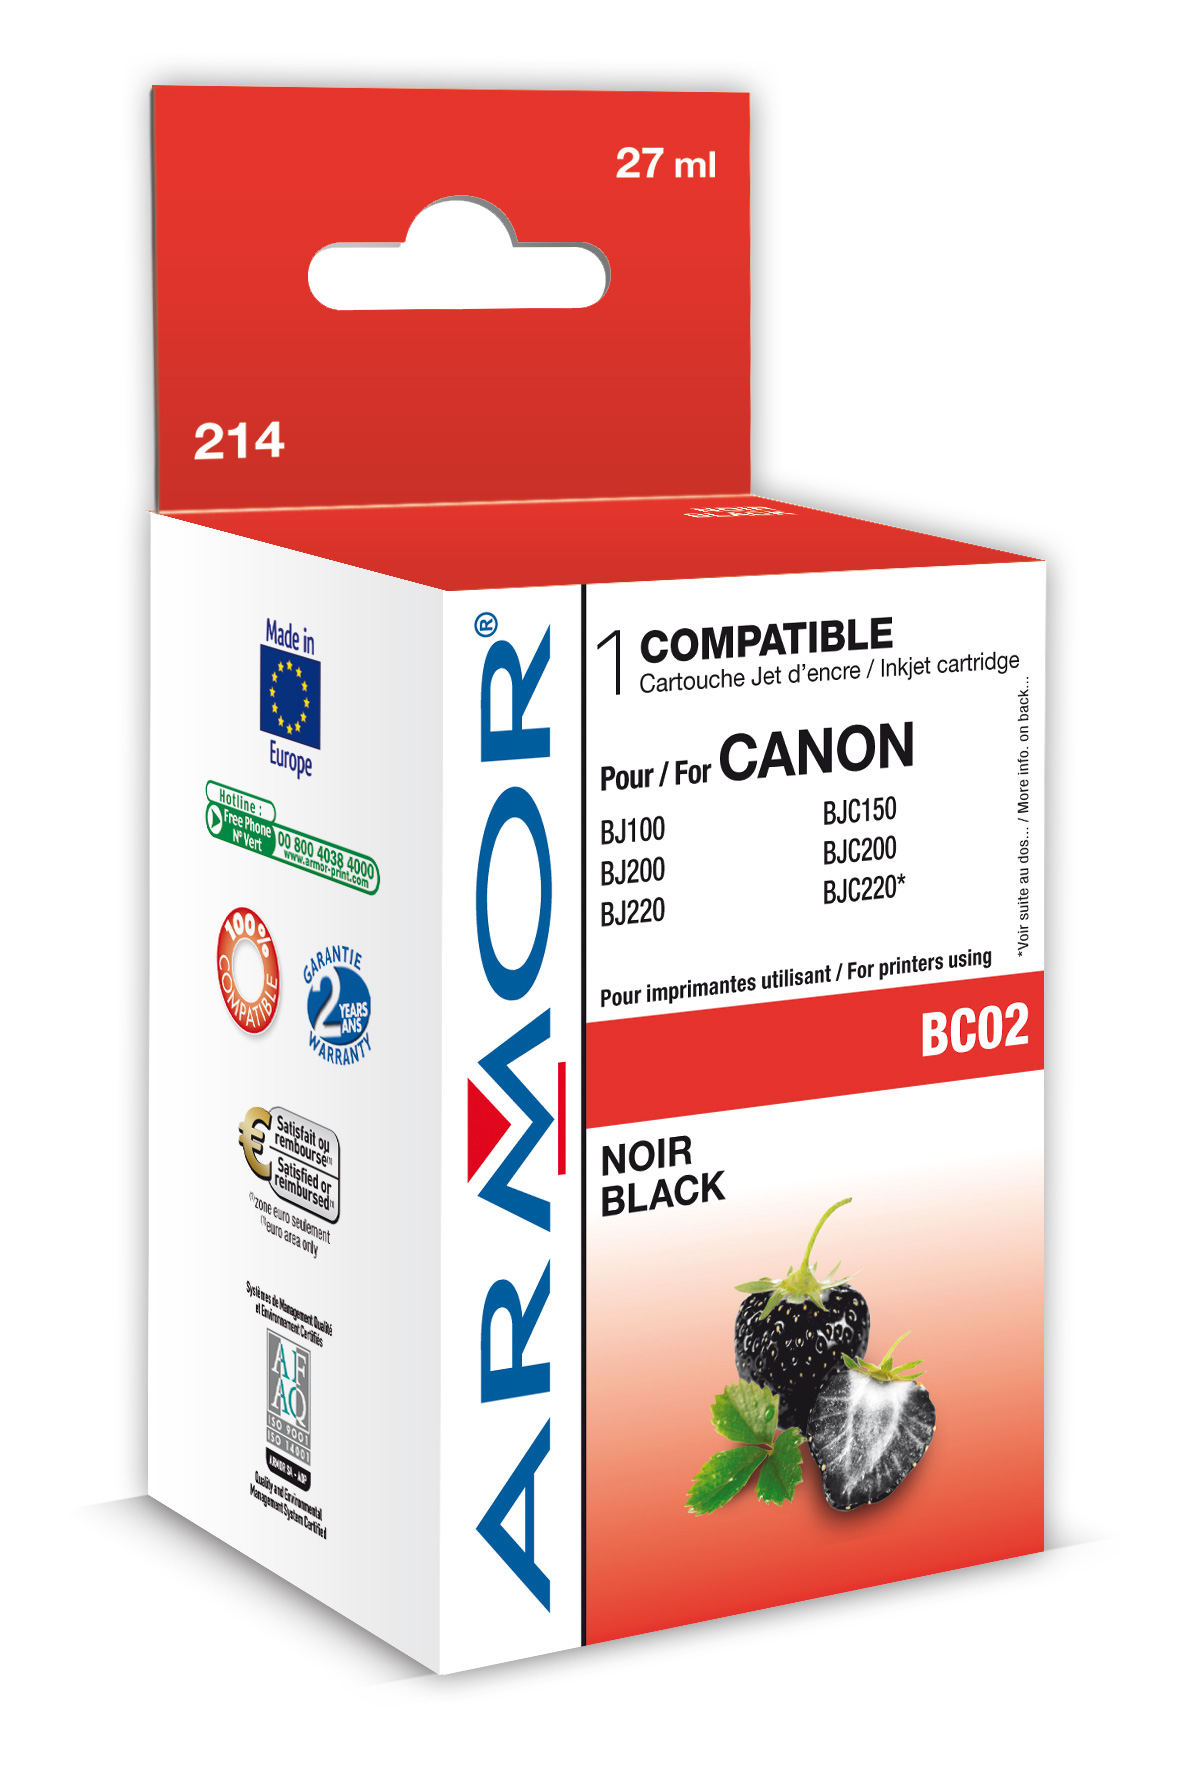 Armor ink-jet pro Canon BJ200 serie (BC-02)